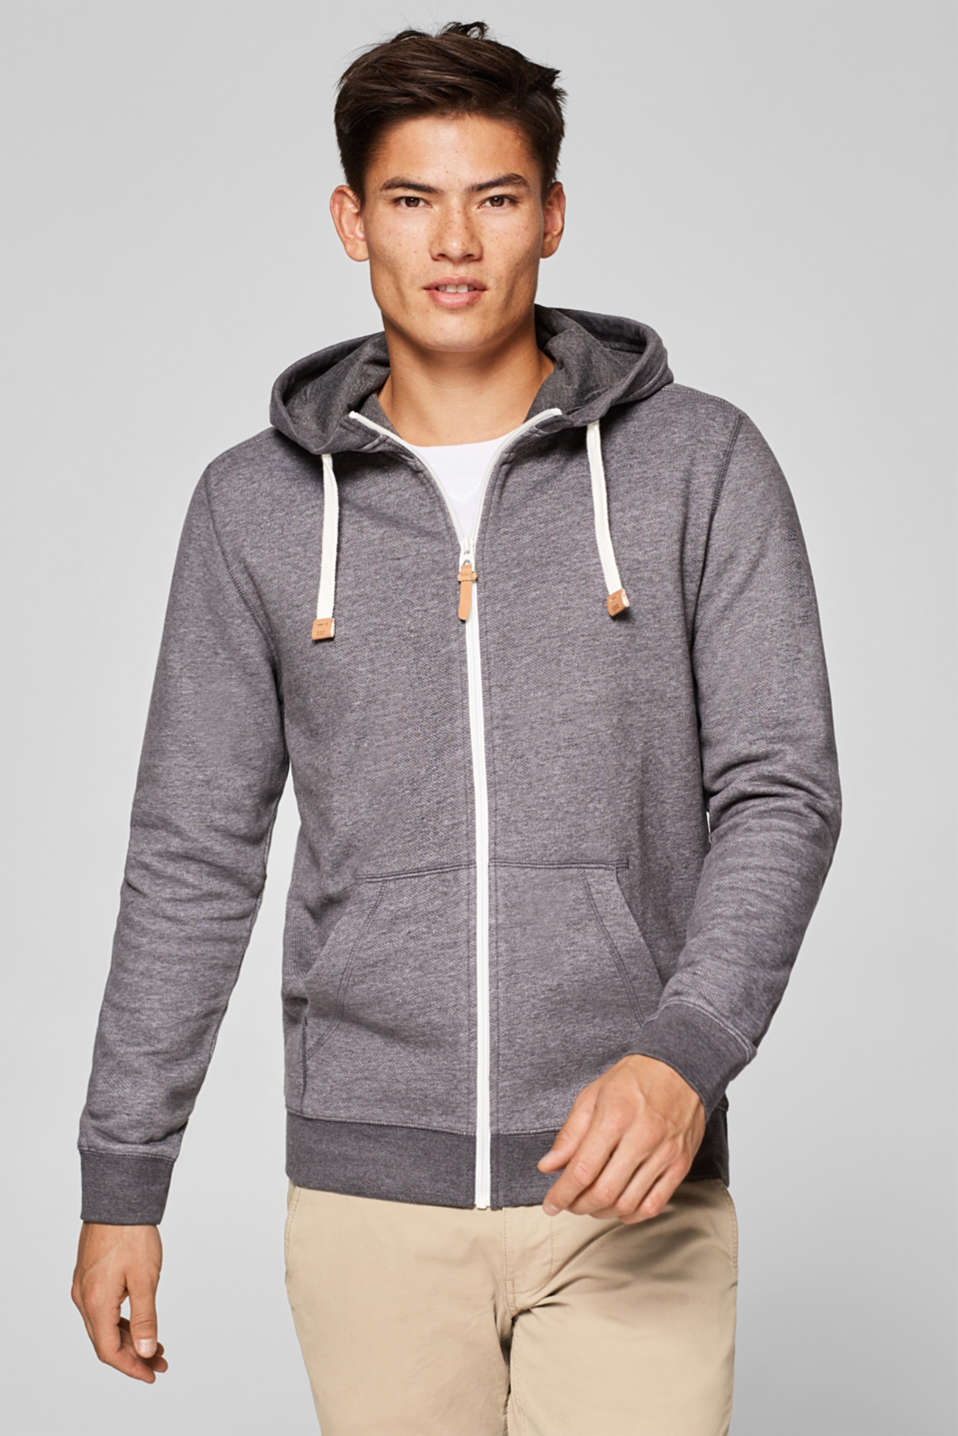 edc - Hooded sweatshirt cardigan